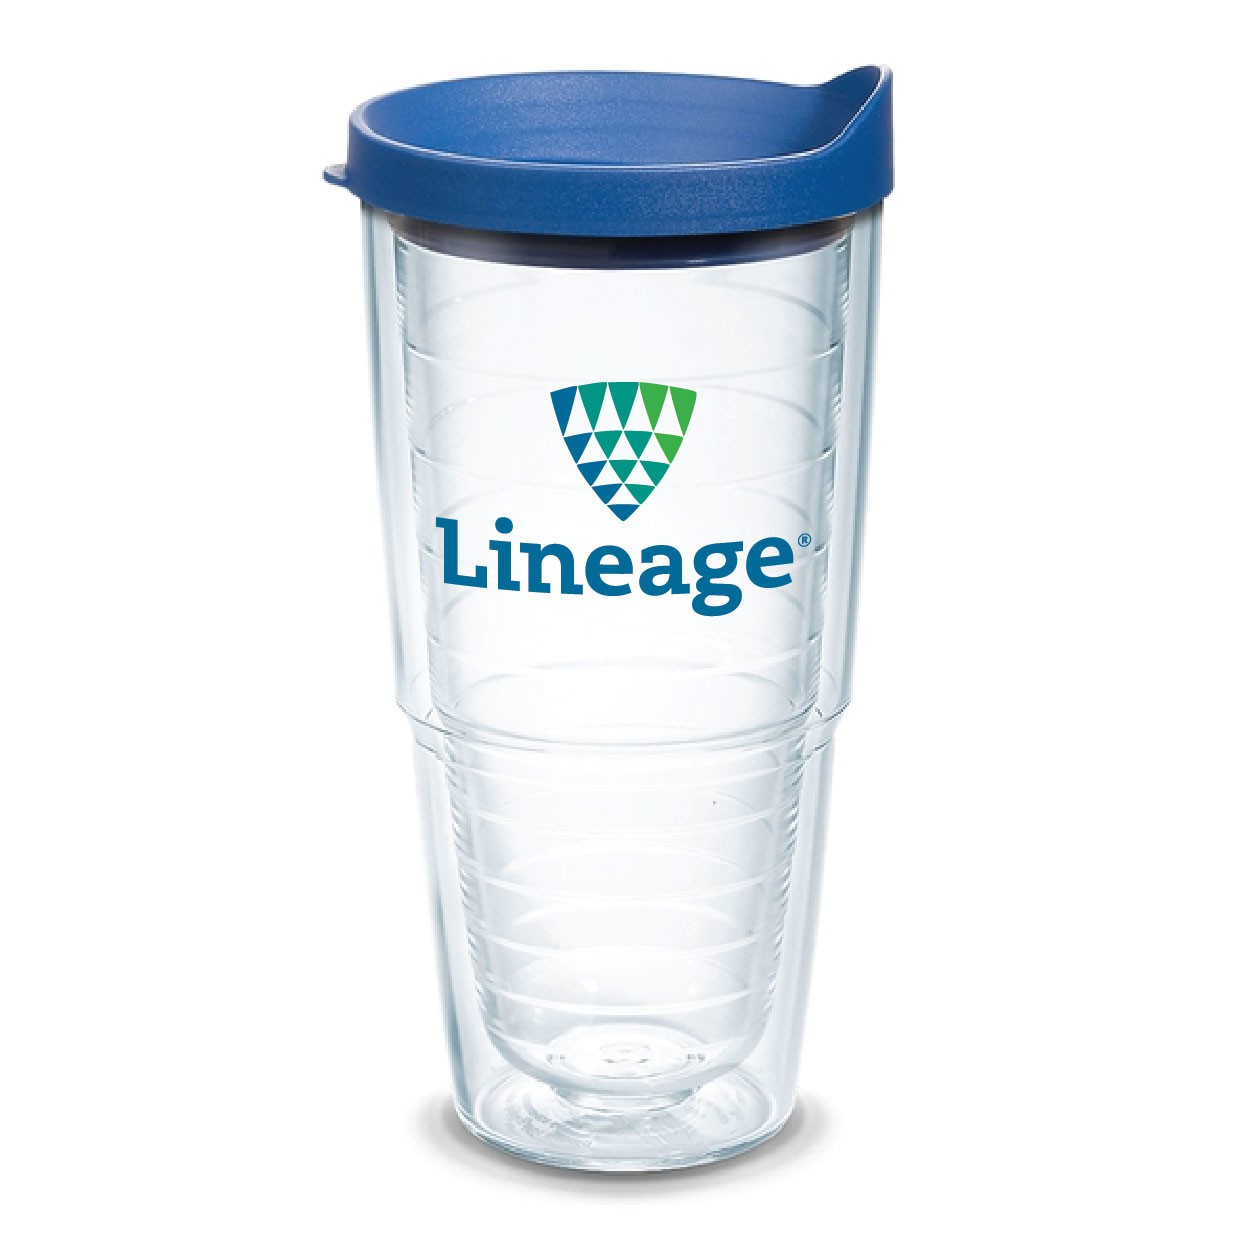 24oz Tervis Tumbler with Lid